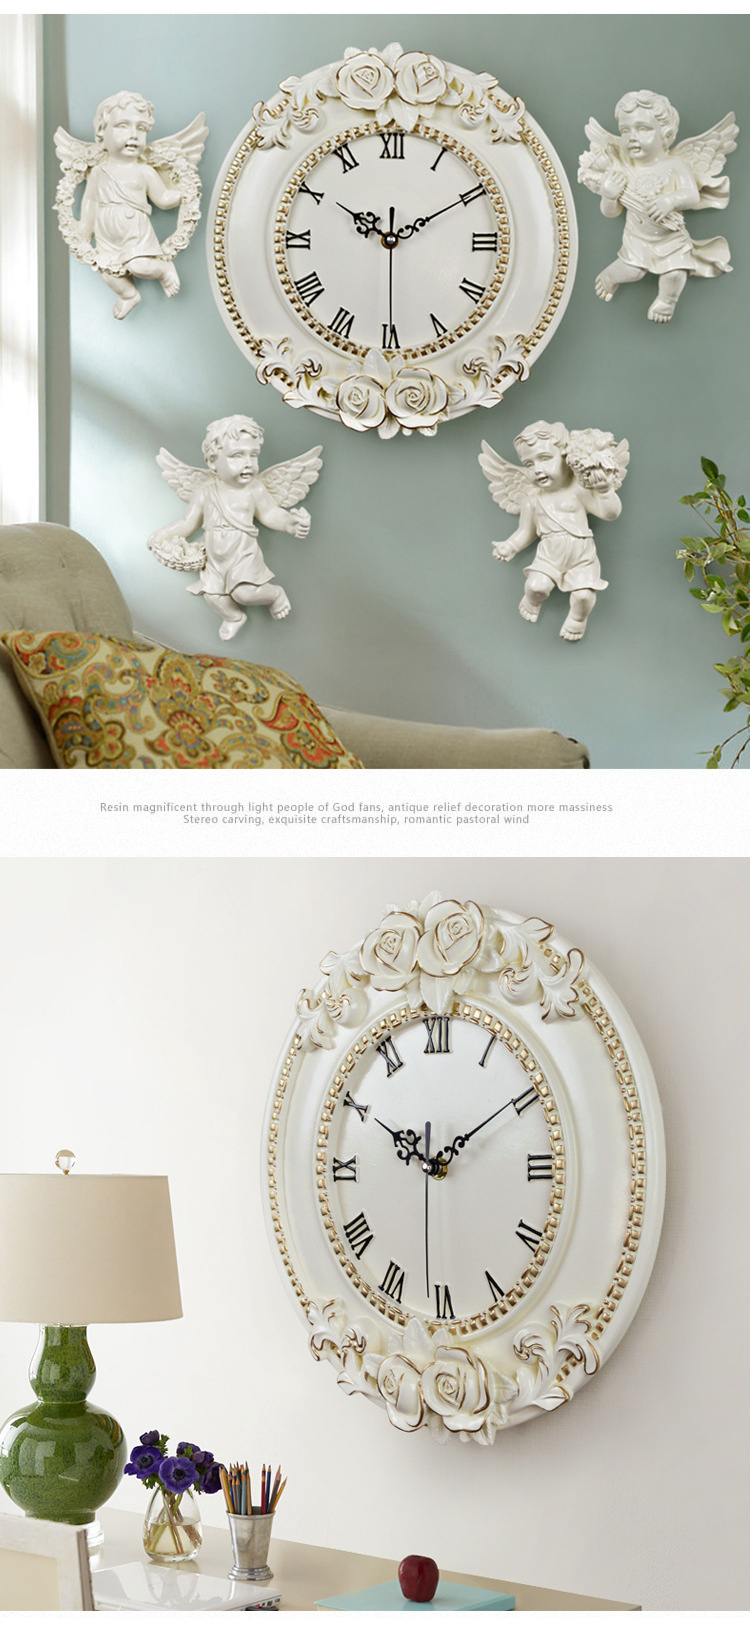 wall-clock-large-wall-clock-watch-vintage-wall-clock-home-decor-accessories-3d-statue-digital-clock-house-room-wedding-party-decoration (4)